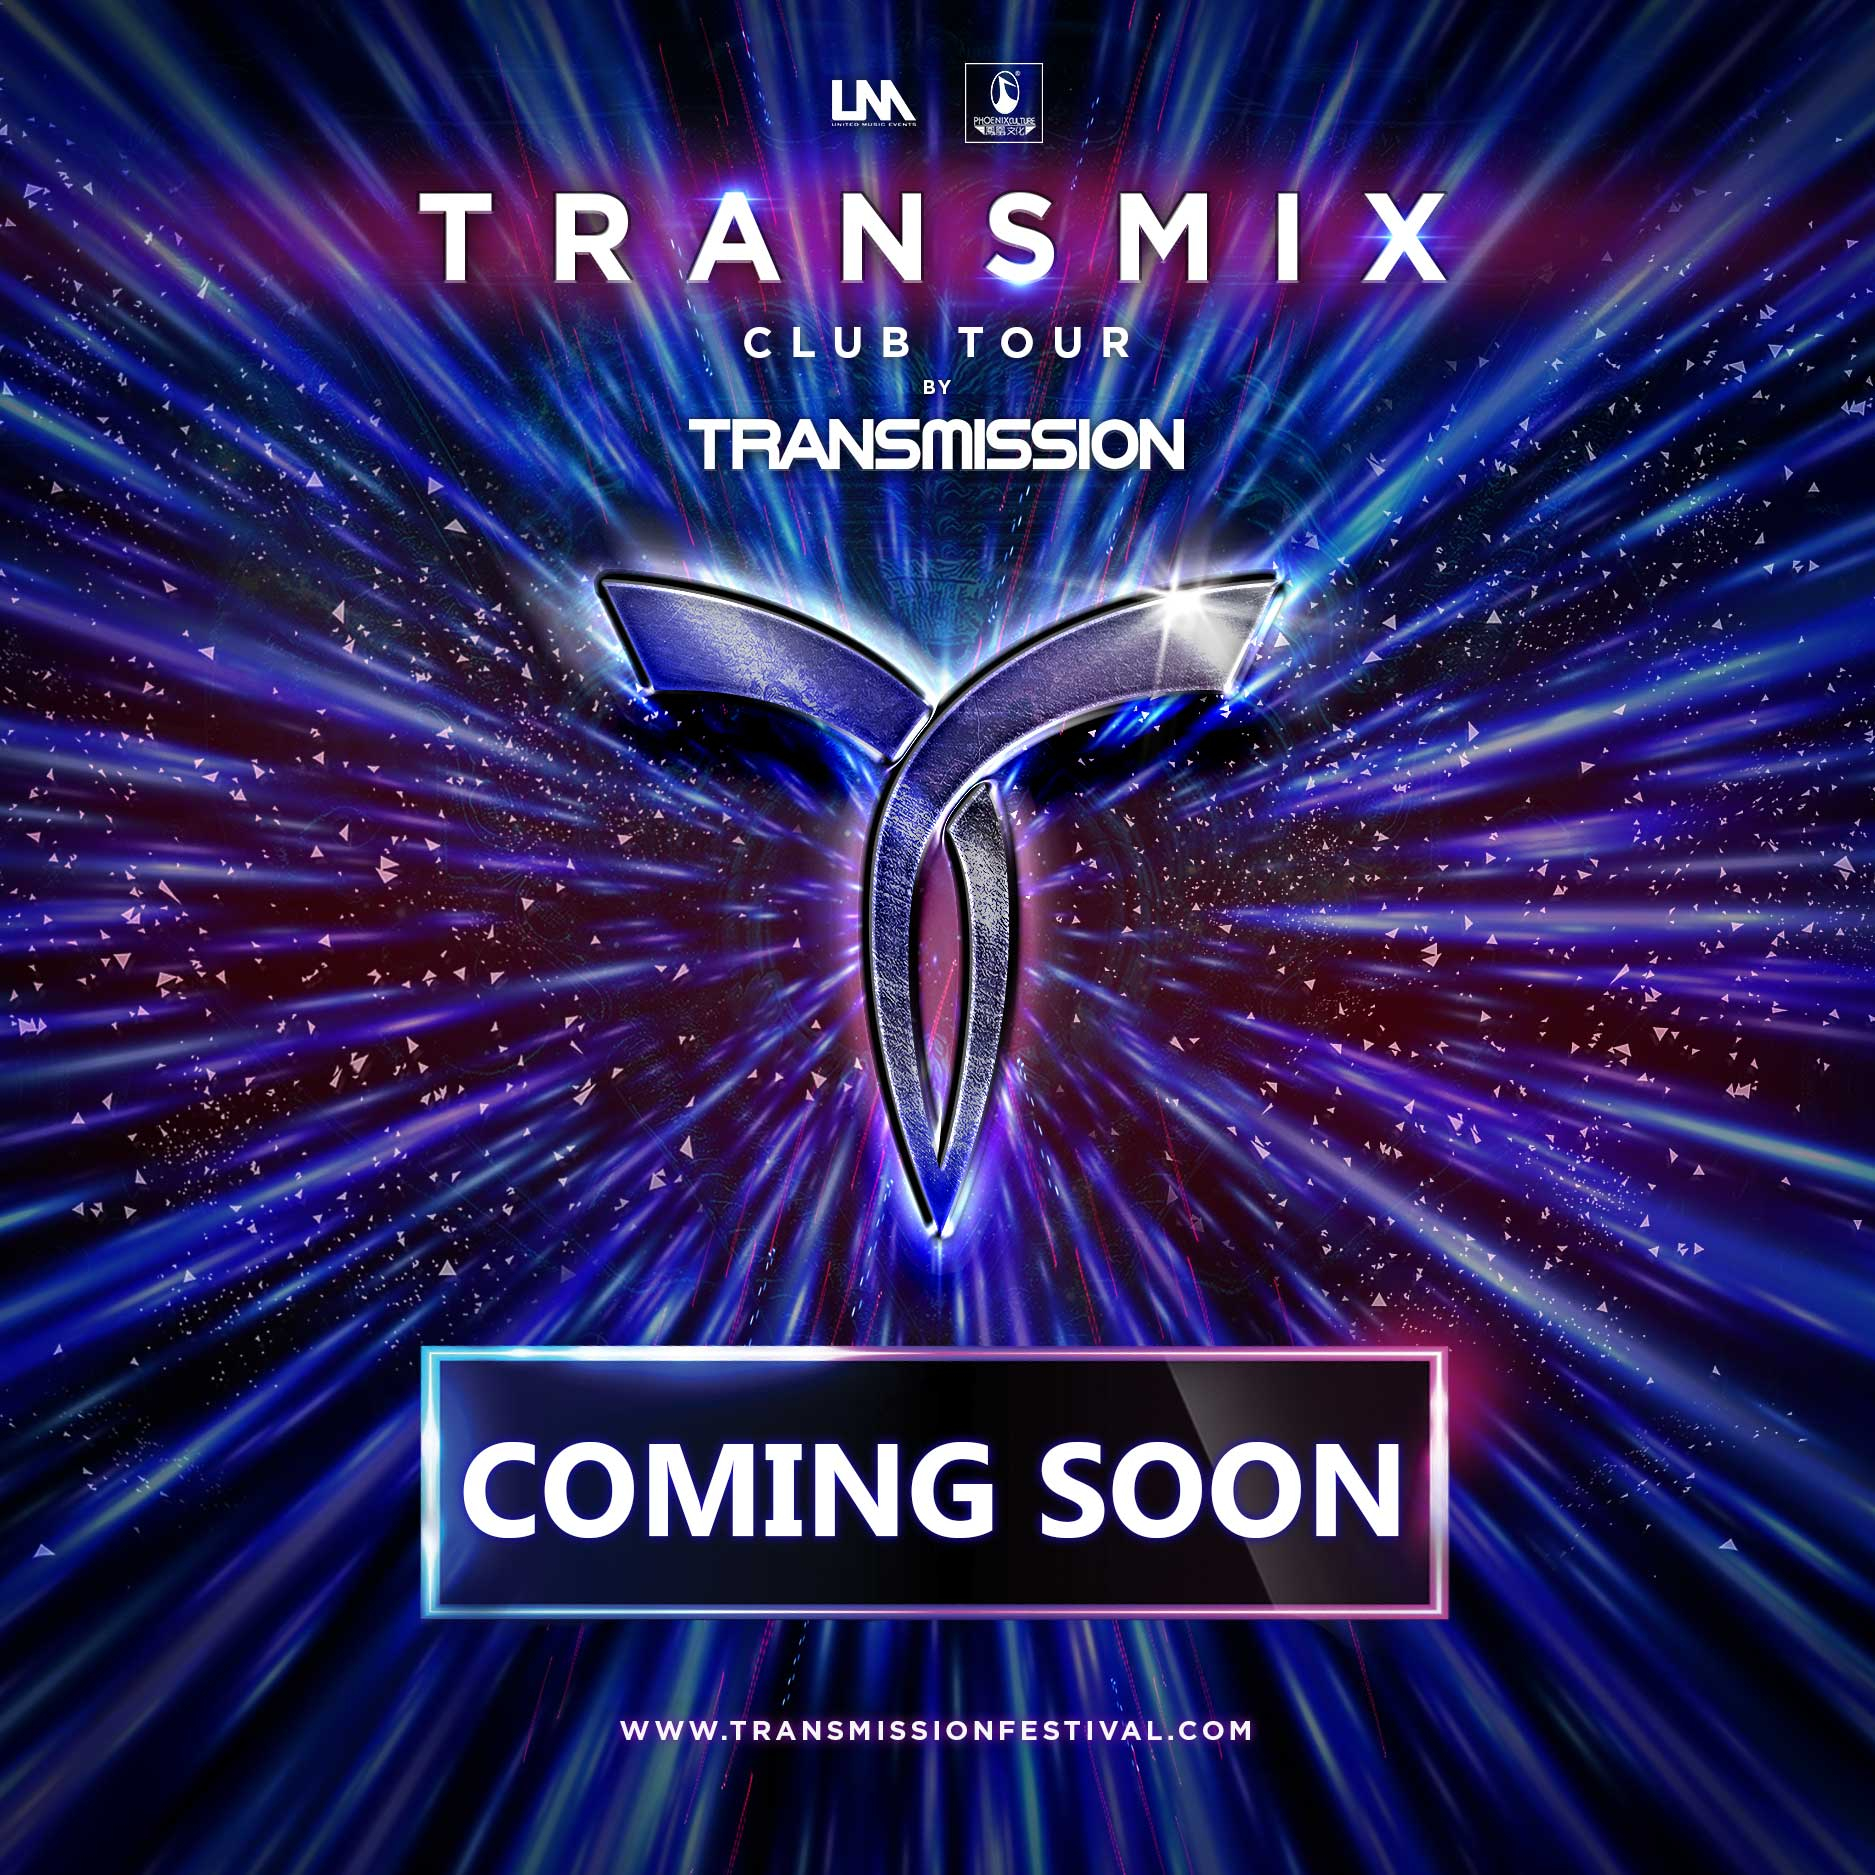 Transmission Festival On Twitter China The Wait Is Over 𝐓𝐑𝐀𝐍𝐒𝐌𝐈𝐗 𝐂𝐥𝐮𝐛 𝐓𝐨𝐮𝐫 By Transmission Is Heading Your Way More Info Soon Transmission China Transmix Clubtour Club Trancefamily Tmchn20 Comingsoon Https T Co